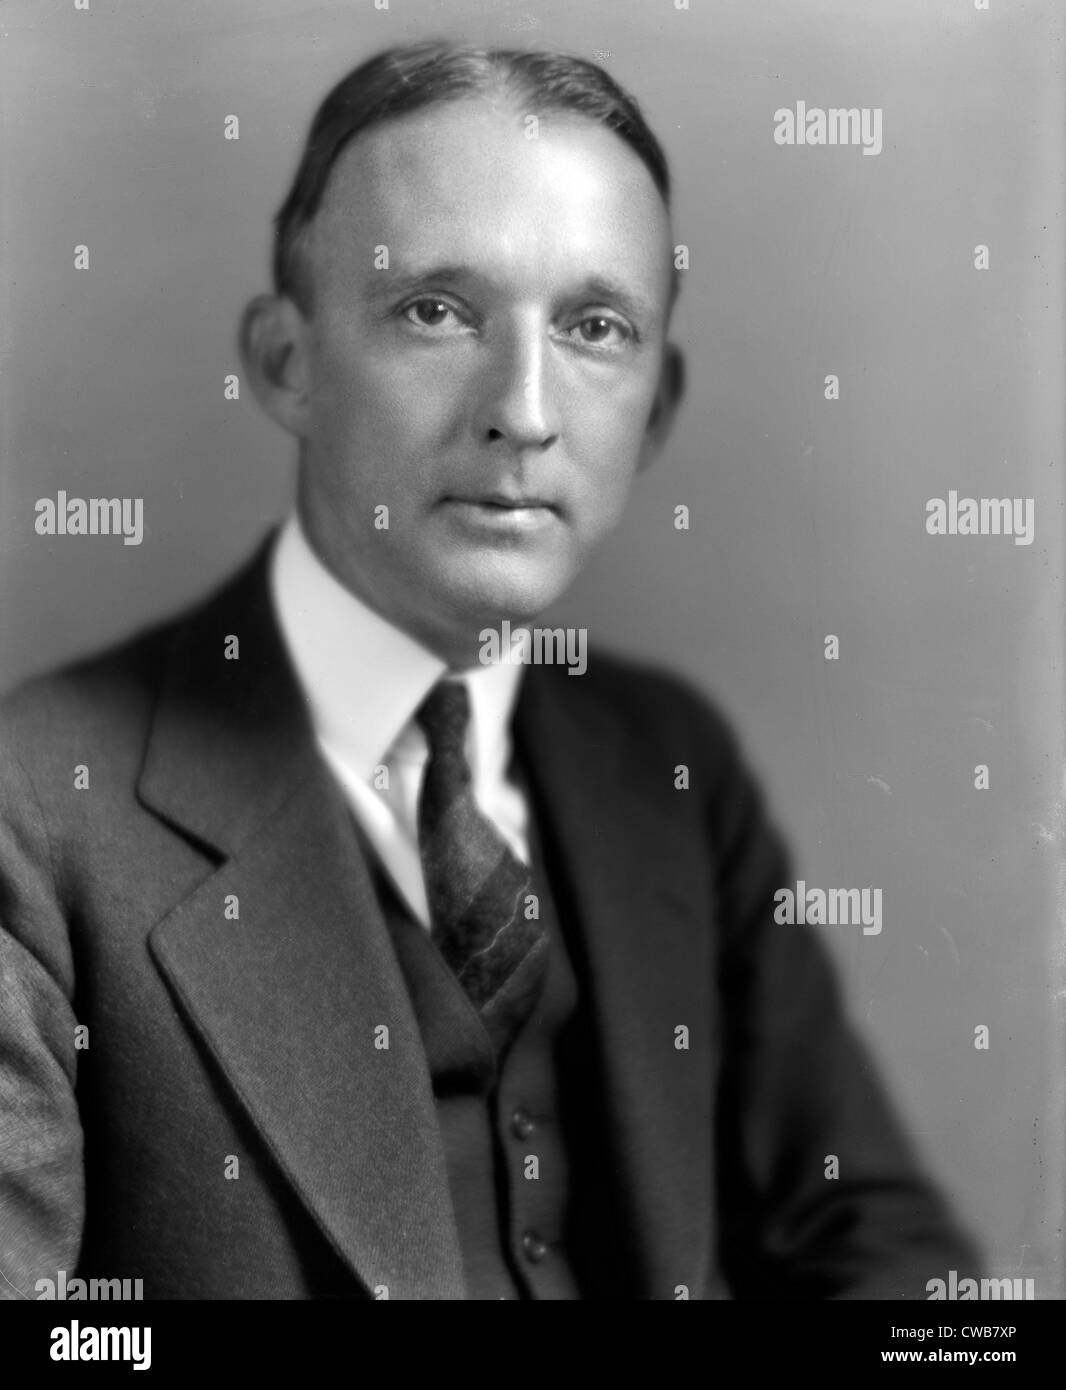 Justice Hugo Black of the US Supreme Court. ca. late 1930s. - Stock Image